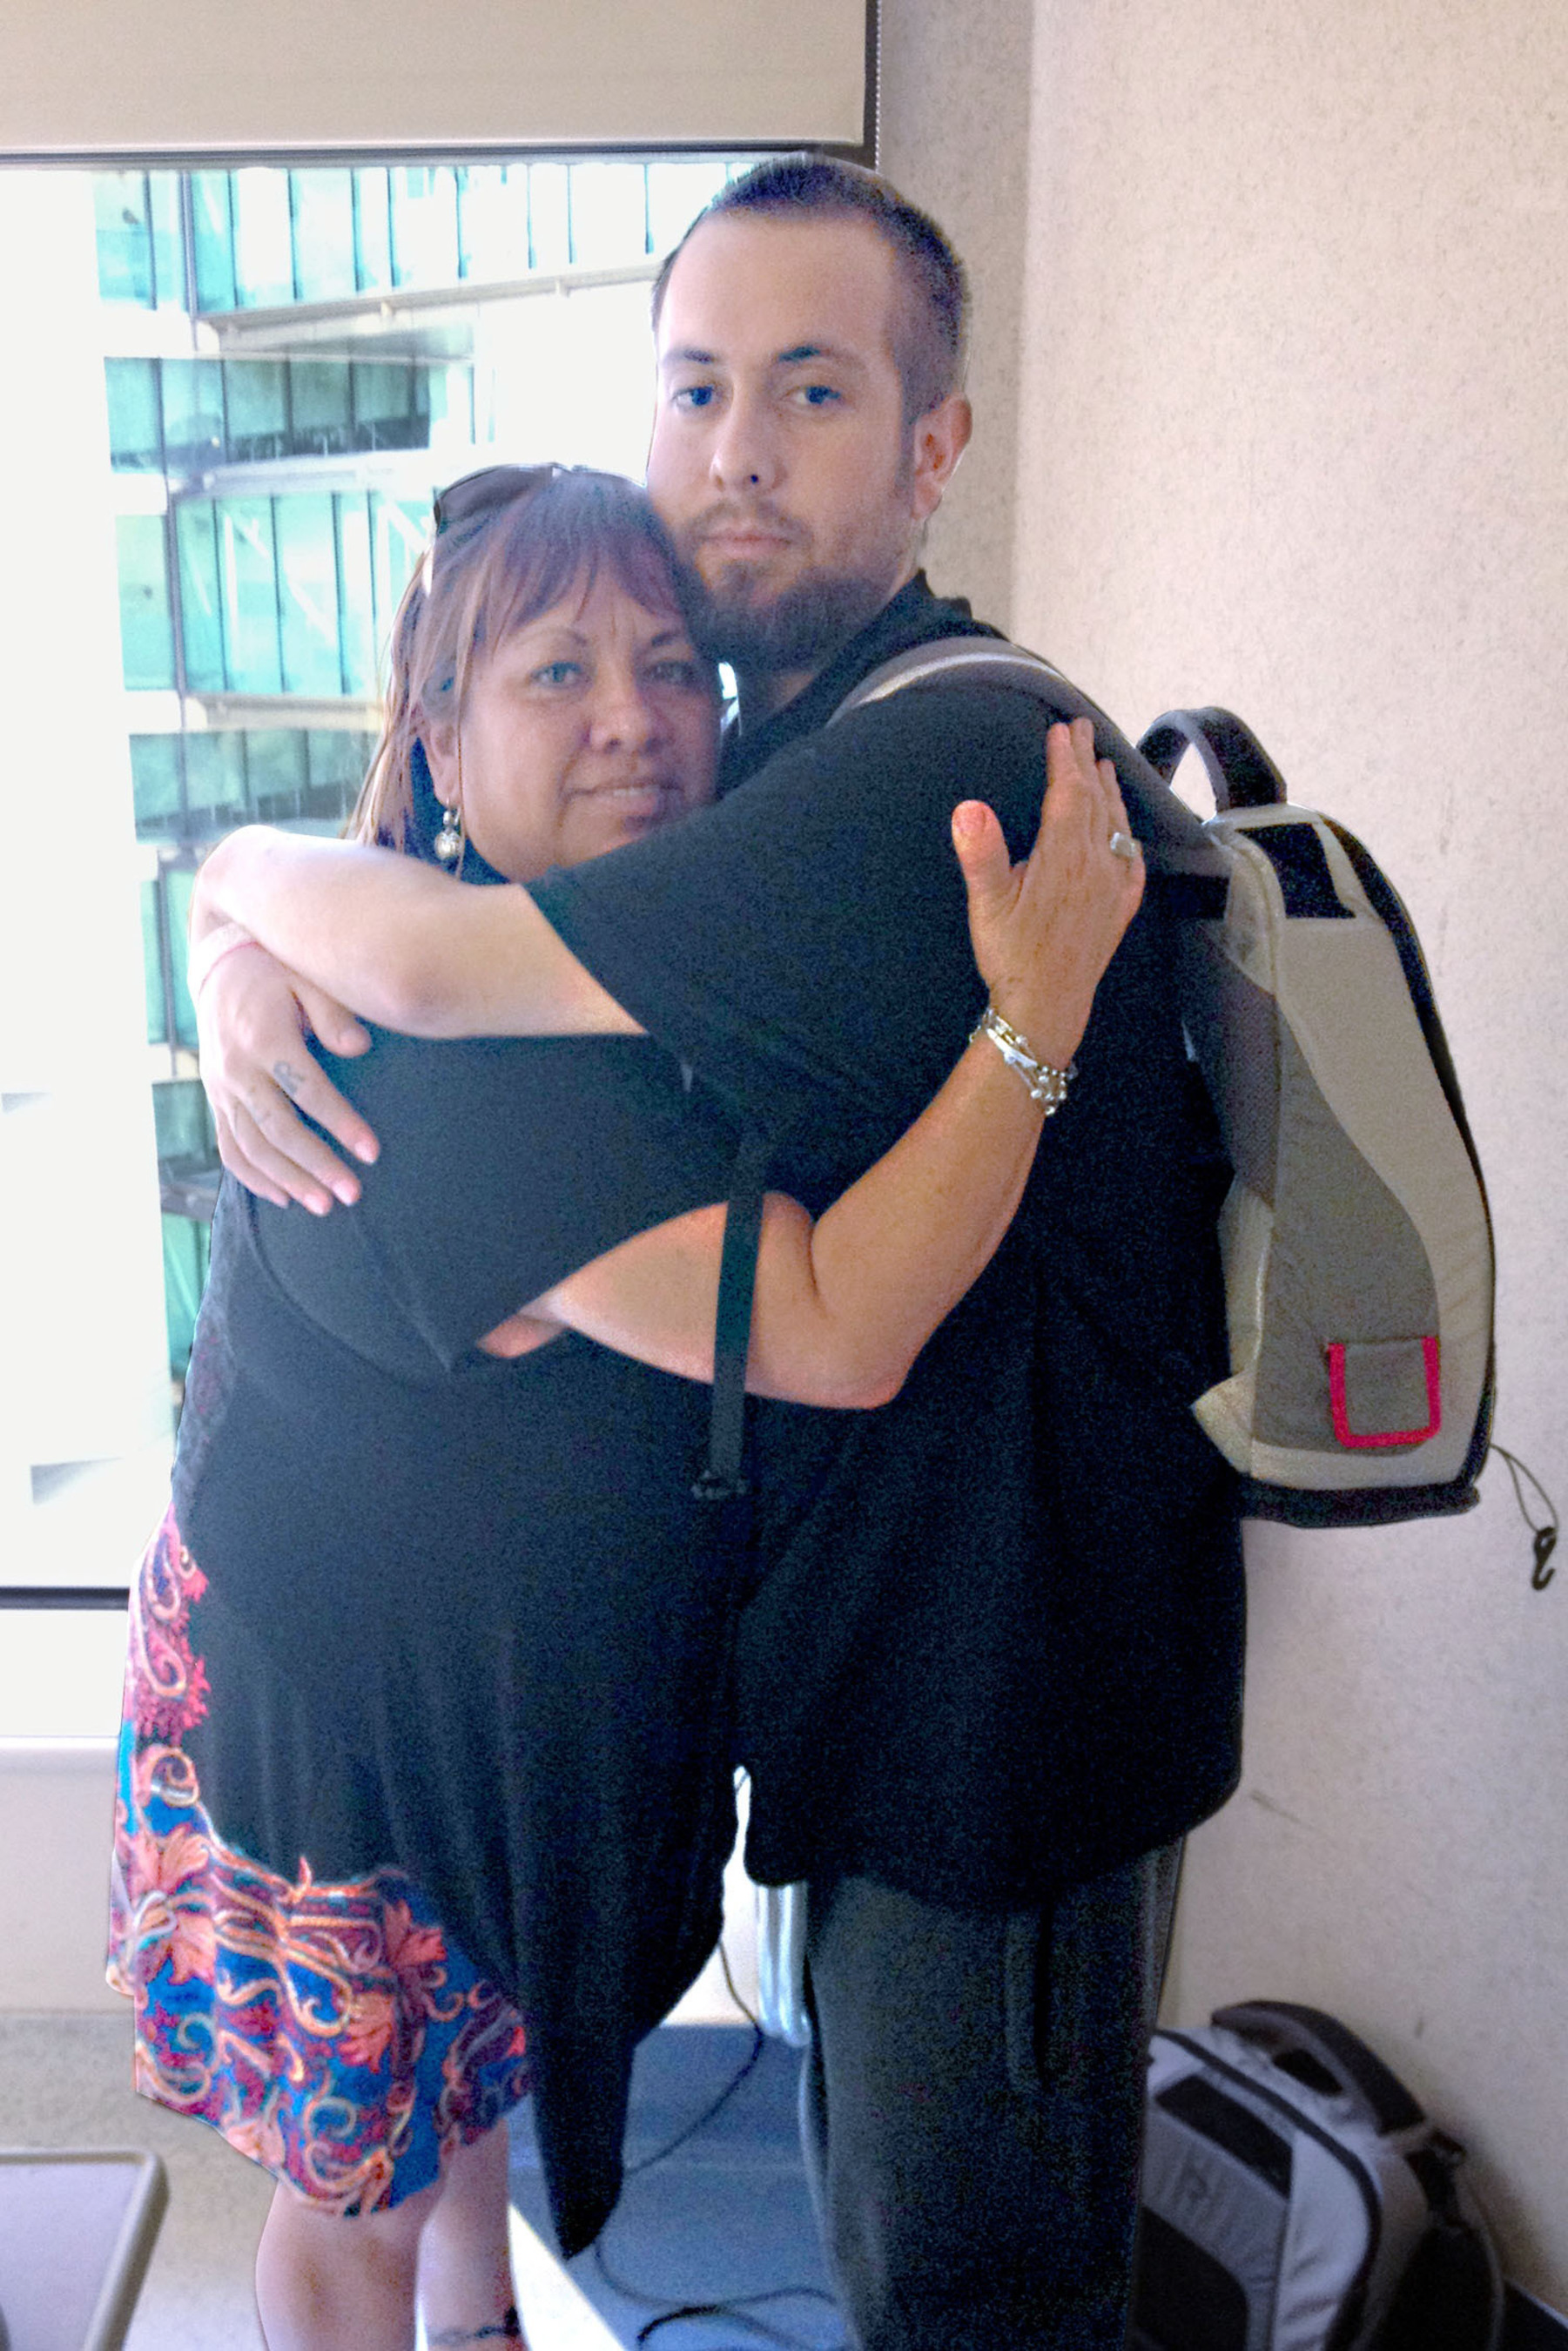 Kevin Stroh's mom, Esperanza Longo, feared for her son when he was diagnosed with the same disease that took her husband's life, congestive heart failure. Kevin is wearing his 13.5 pound Freedom portable driver in the backpack that powers the SynCardia Total Artificial Heart. Use of the SynCardia Total Artificial Heart provided Kevin with a bridge to human heart transplant and a much happier outcome.  (PRNewsFoto/SynCardia Systems, Inc.)